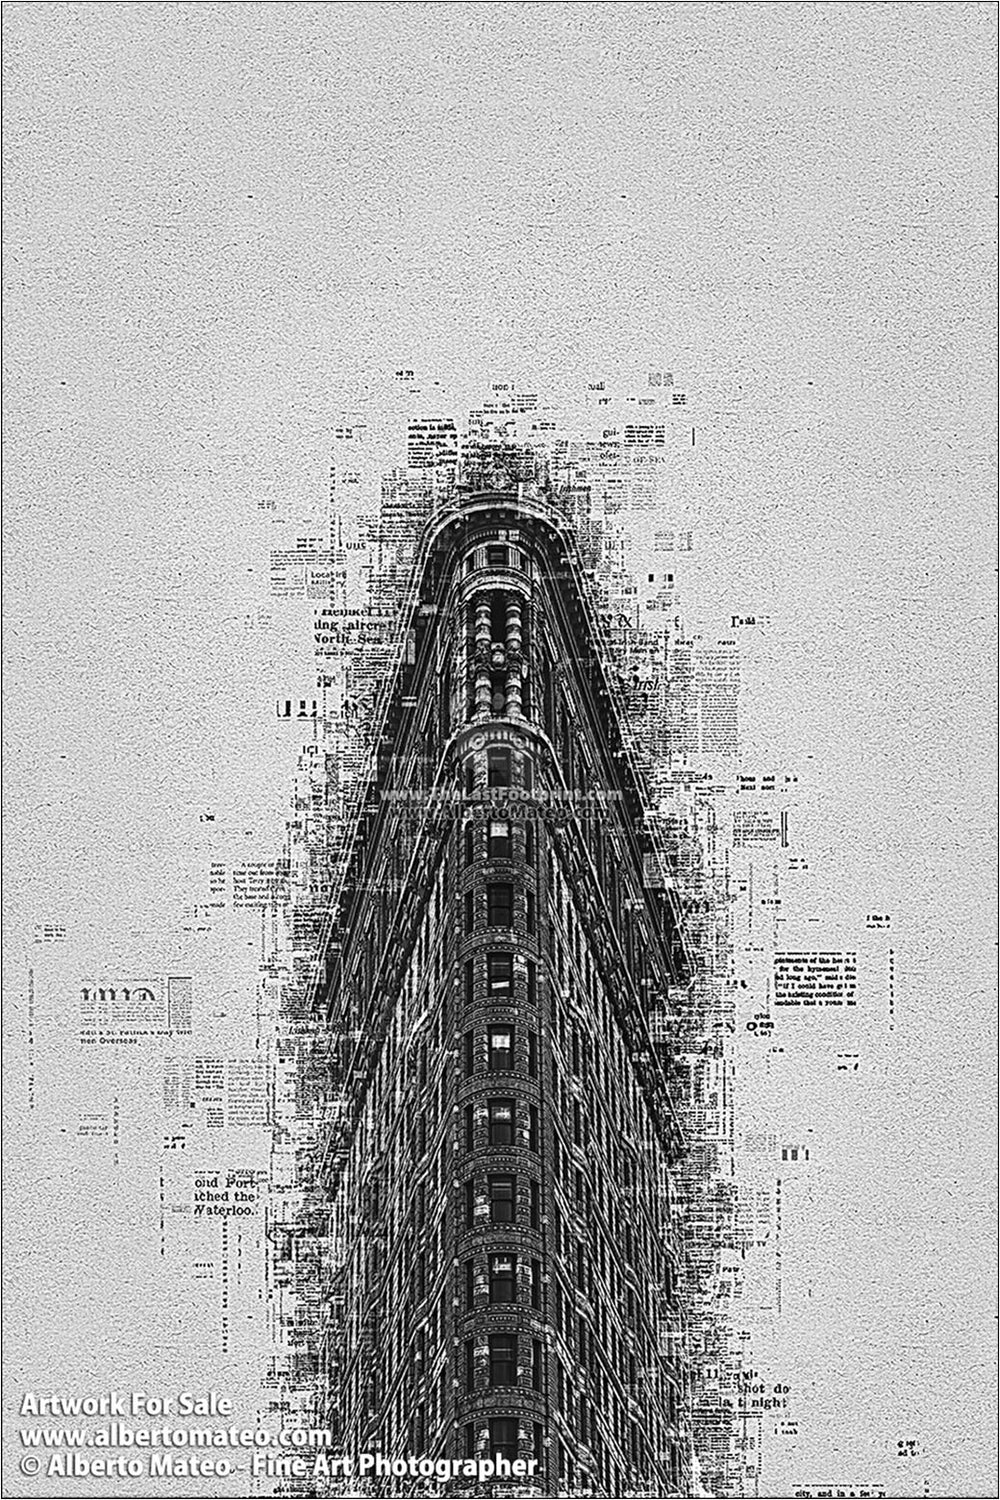 Flat Iron Building, Manhattan, New York. | Already Written Series | Limited Edition Print.